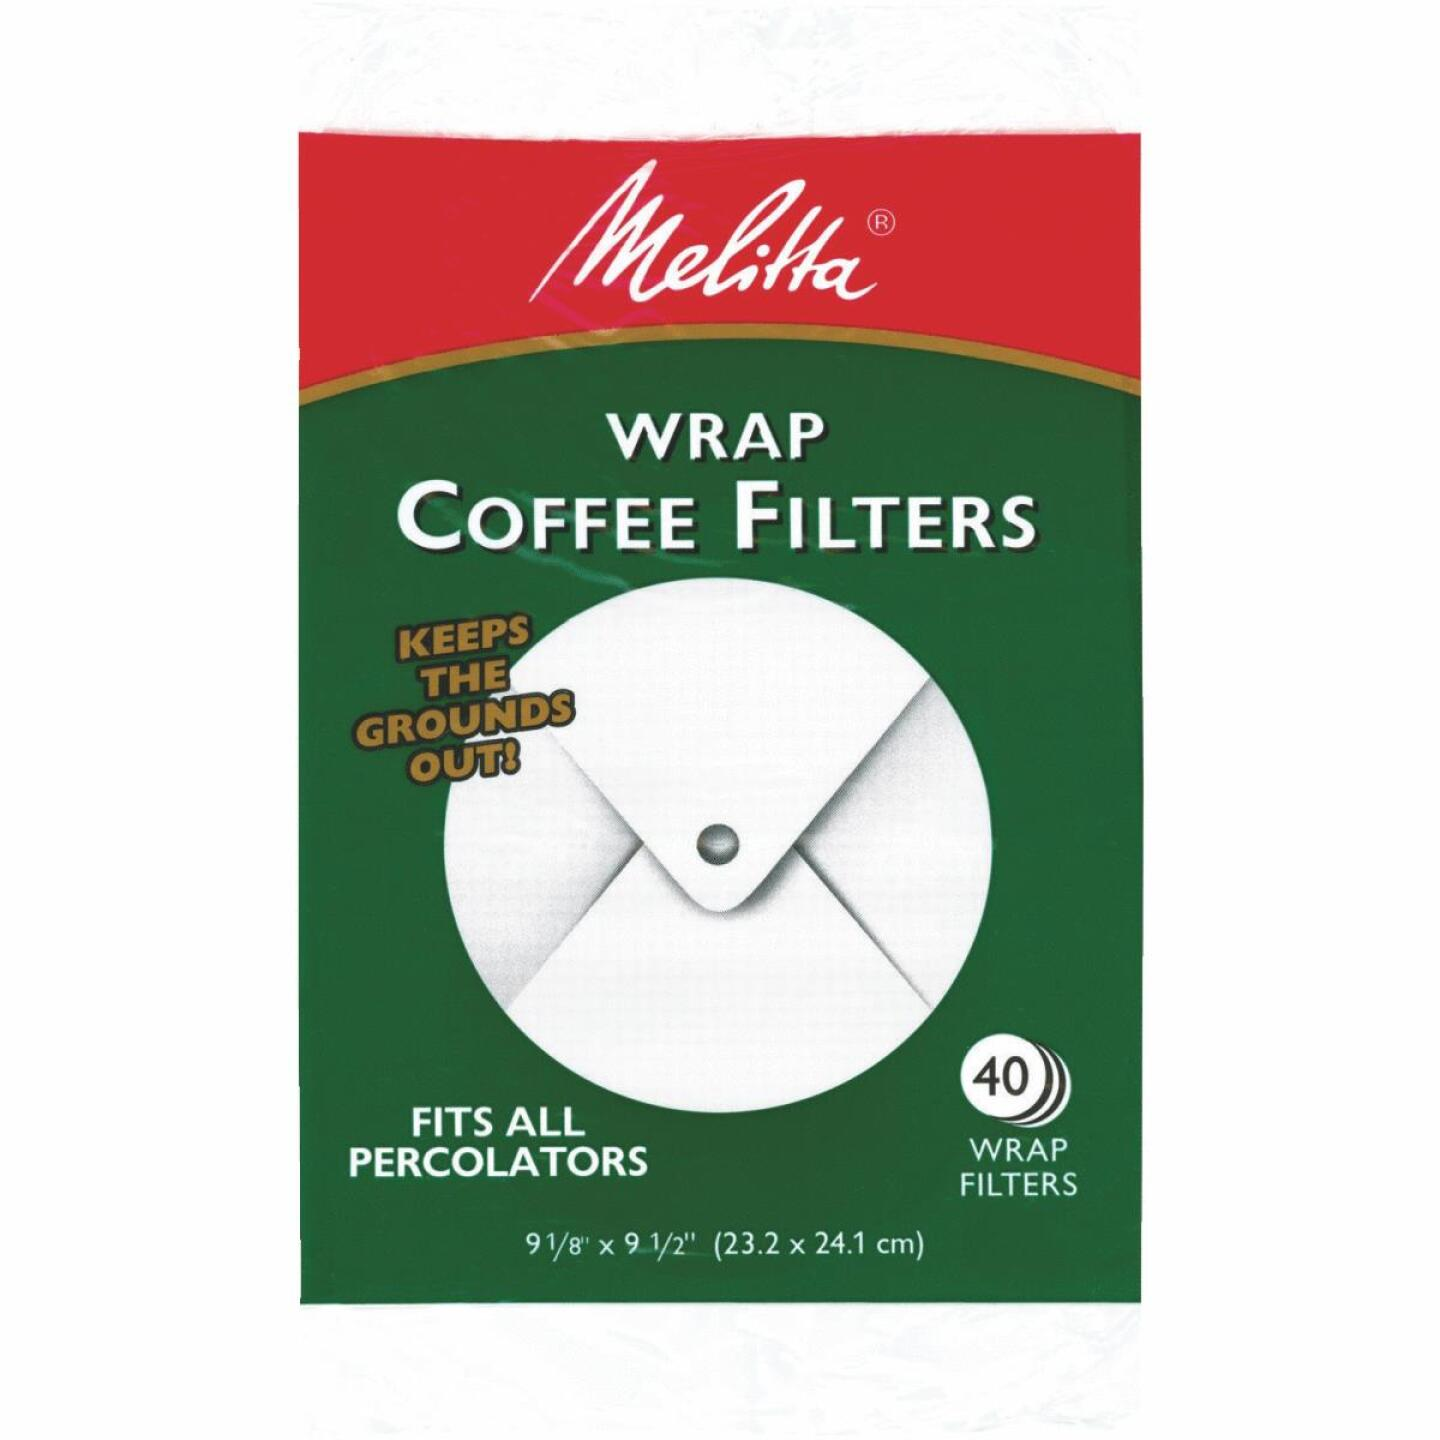 Melitta White Wrap Coffee Filter (40-Pack) Image 1